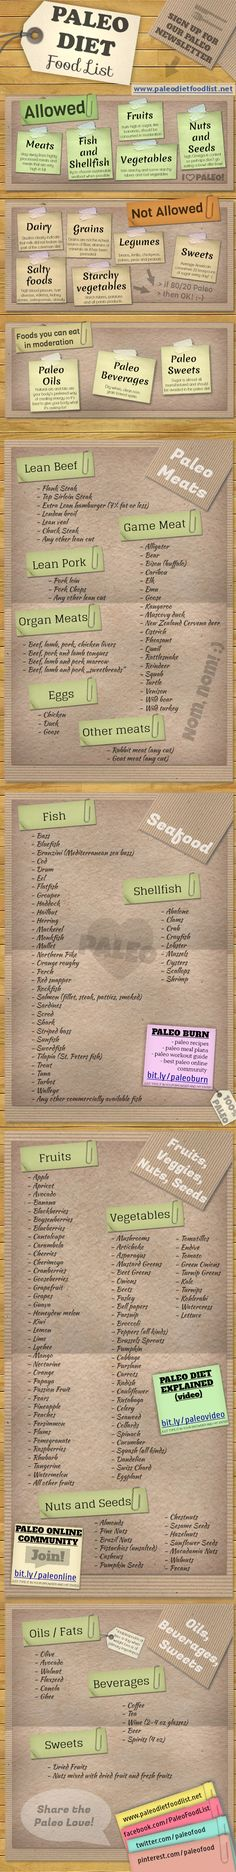 paleo-diet-food-list-infographic